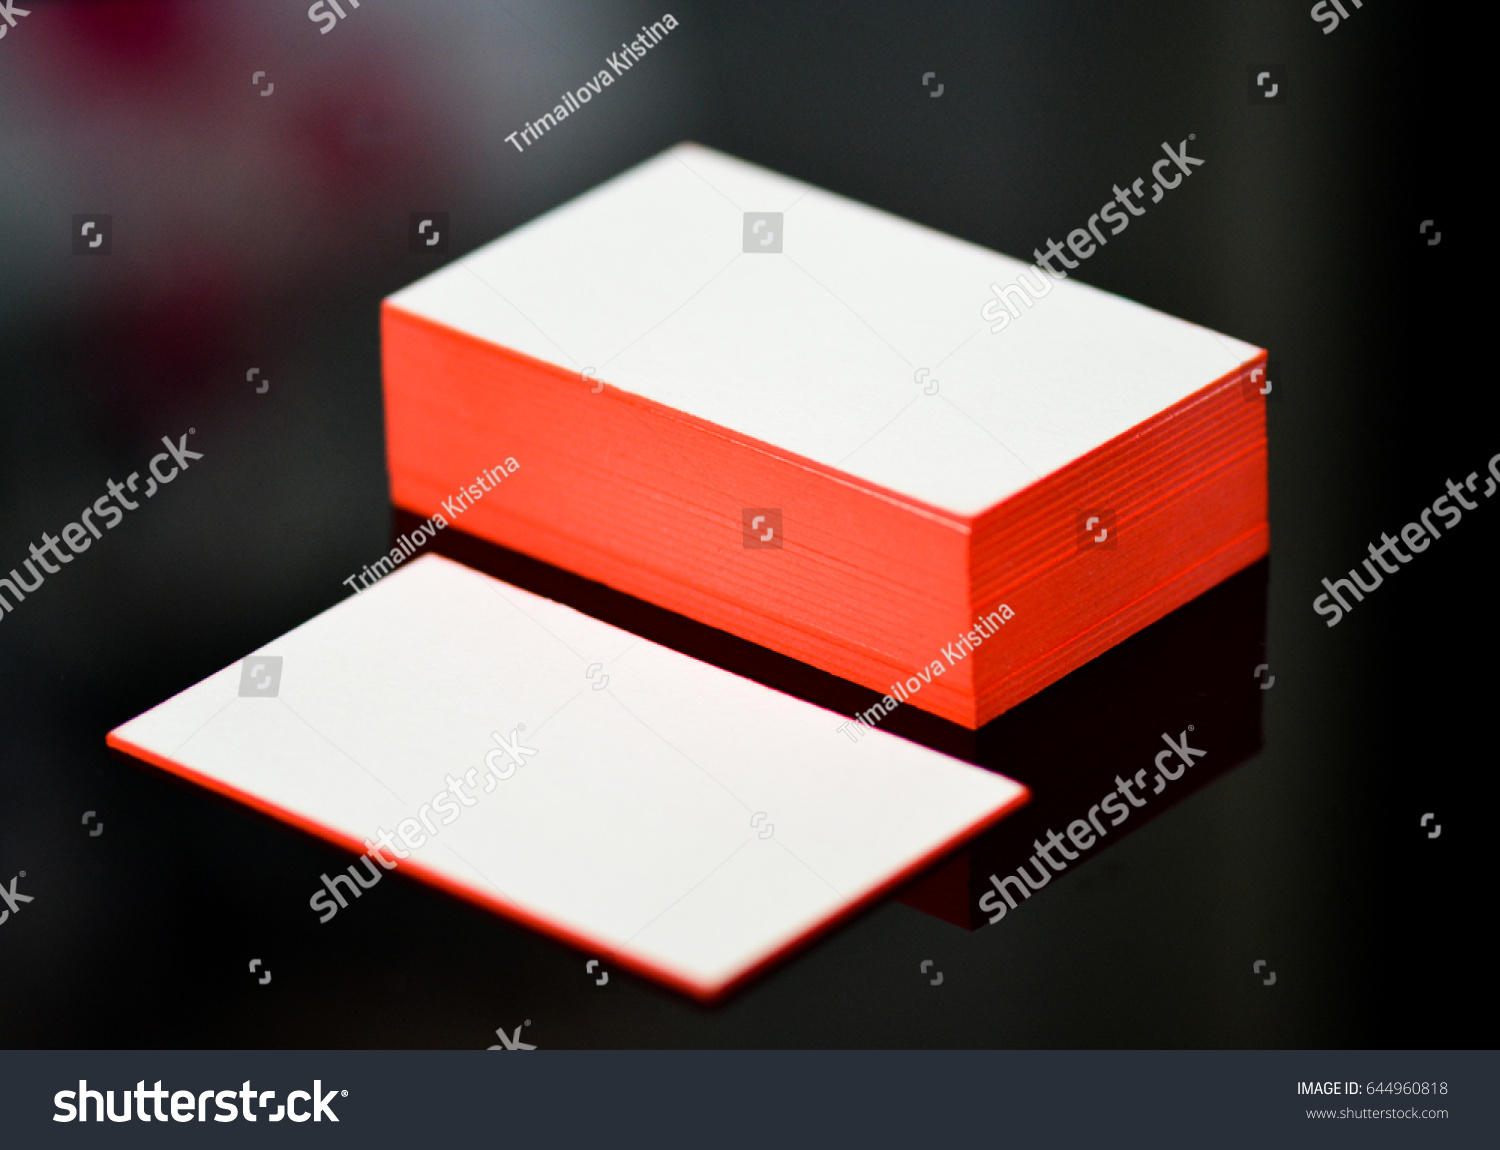 Standard business card thickness choice image free business cards cotton business card image collections free business cards thick white cotton paper business card stock photo magicingreecefo Choice Image